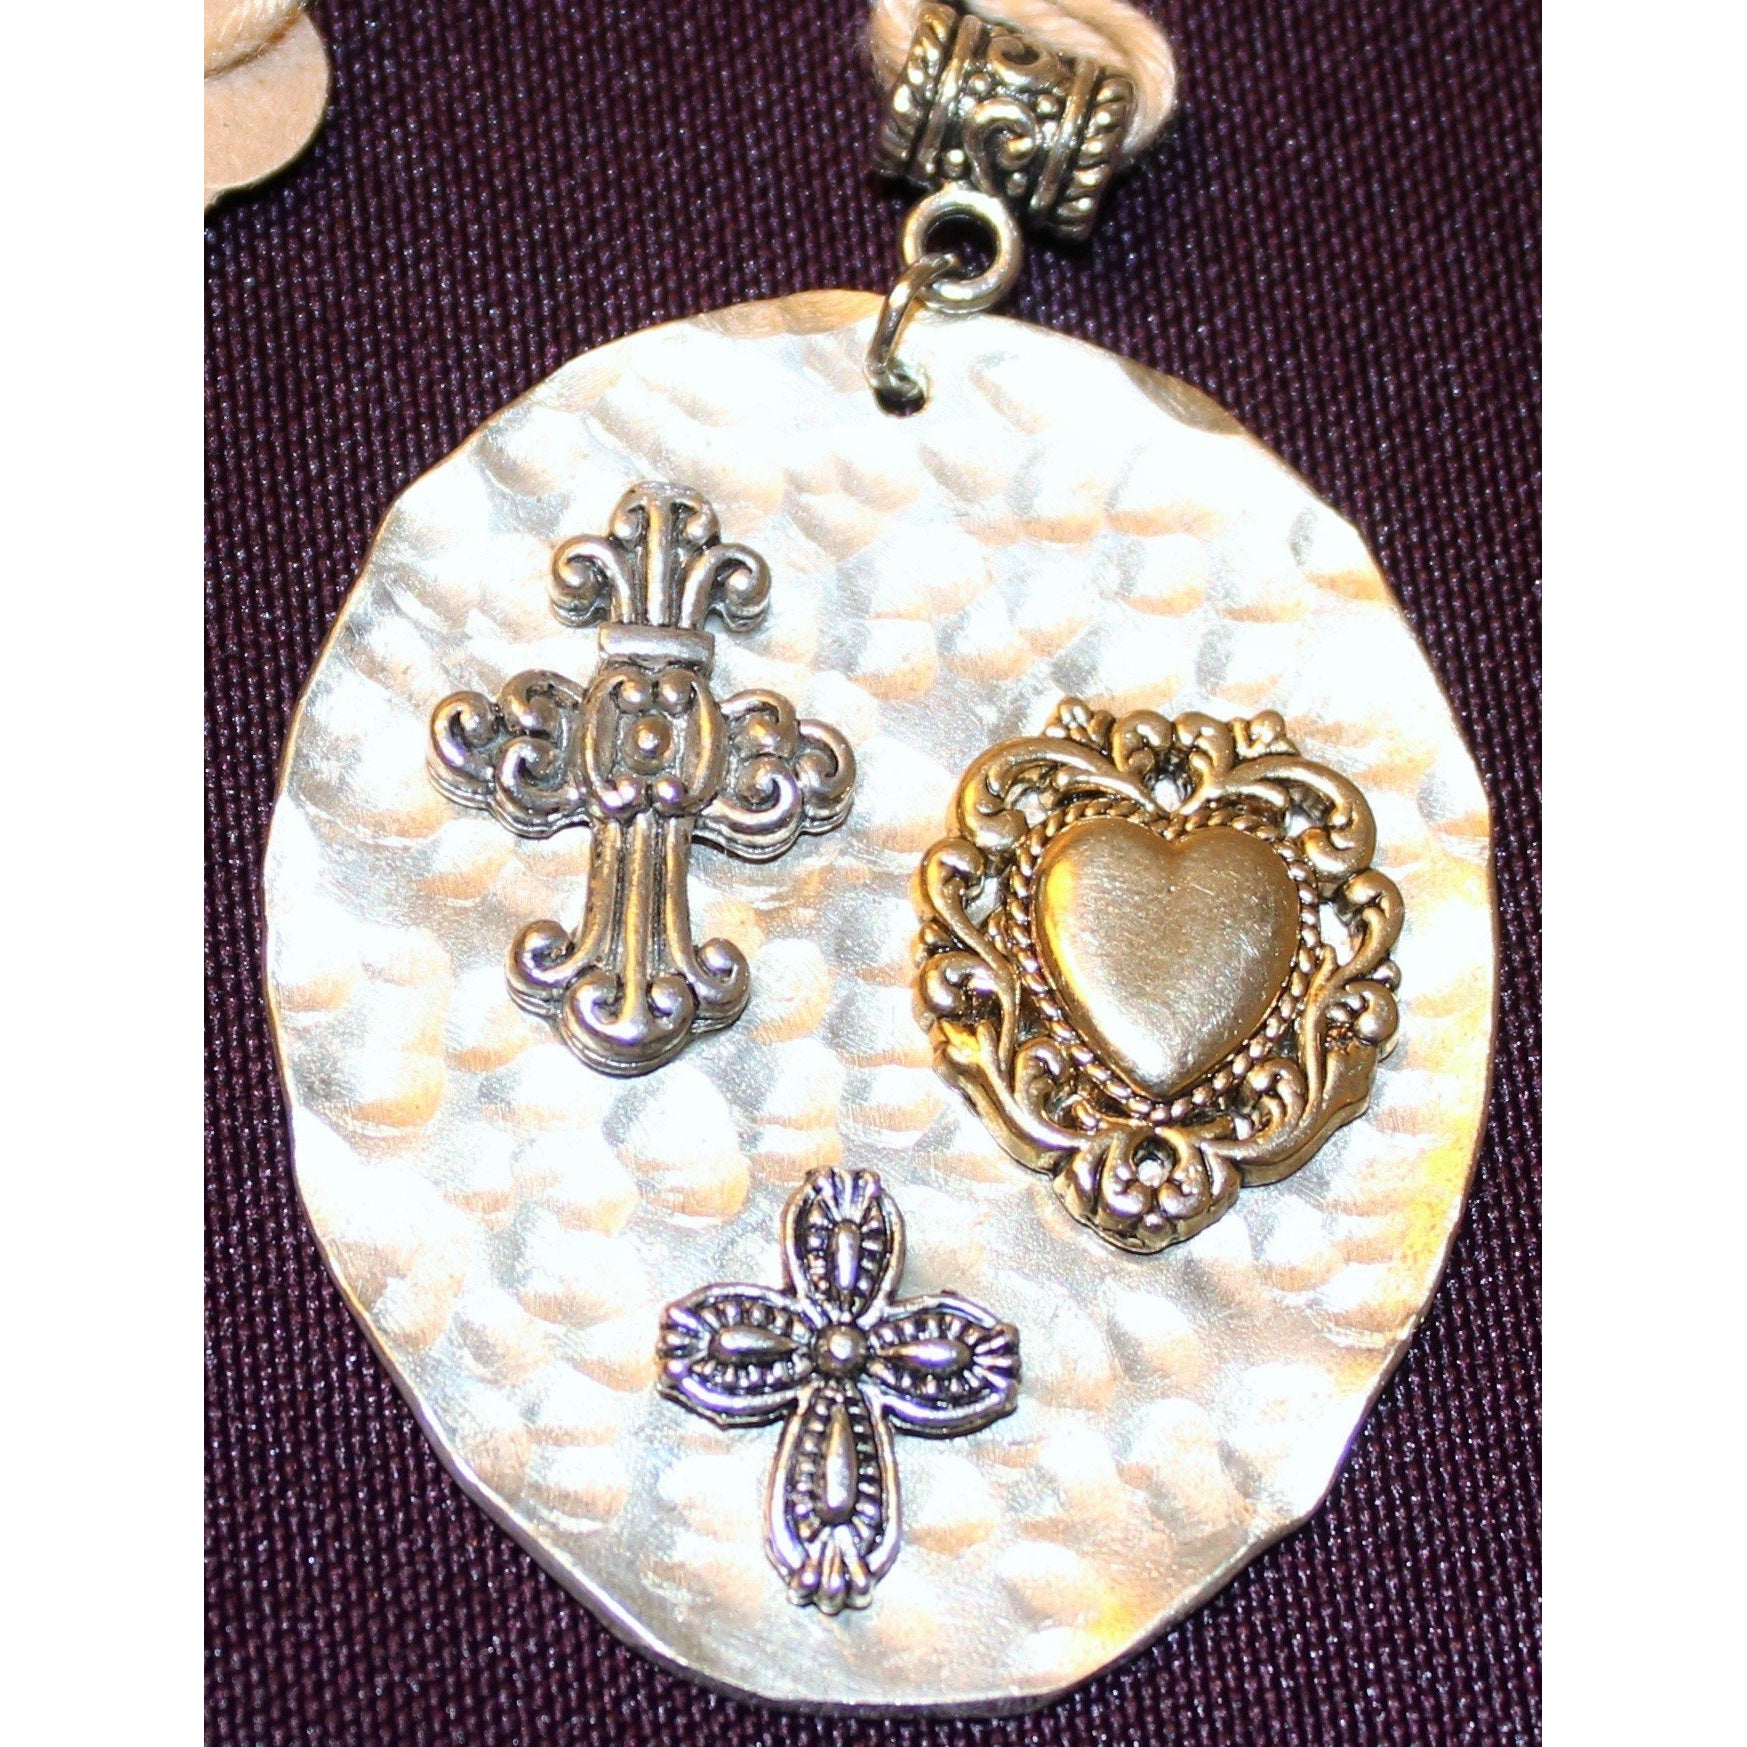 Hammered Spoon with Crosses and Heart Pendant